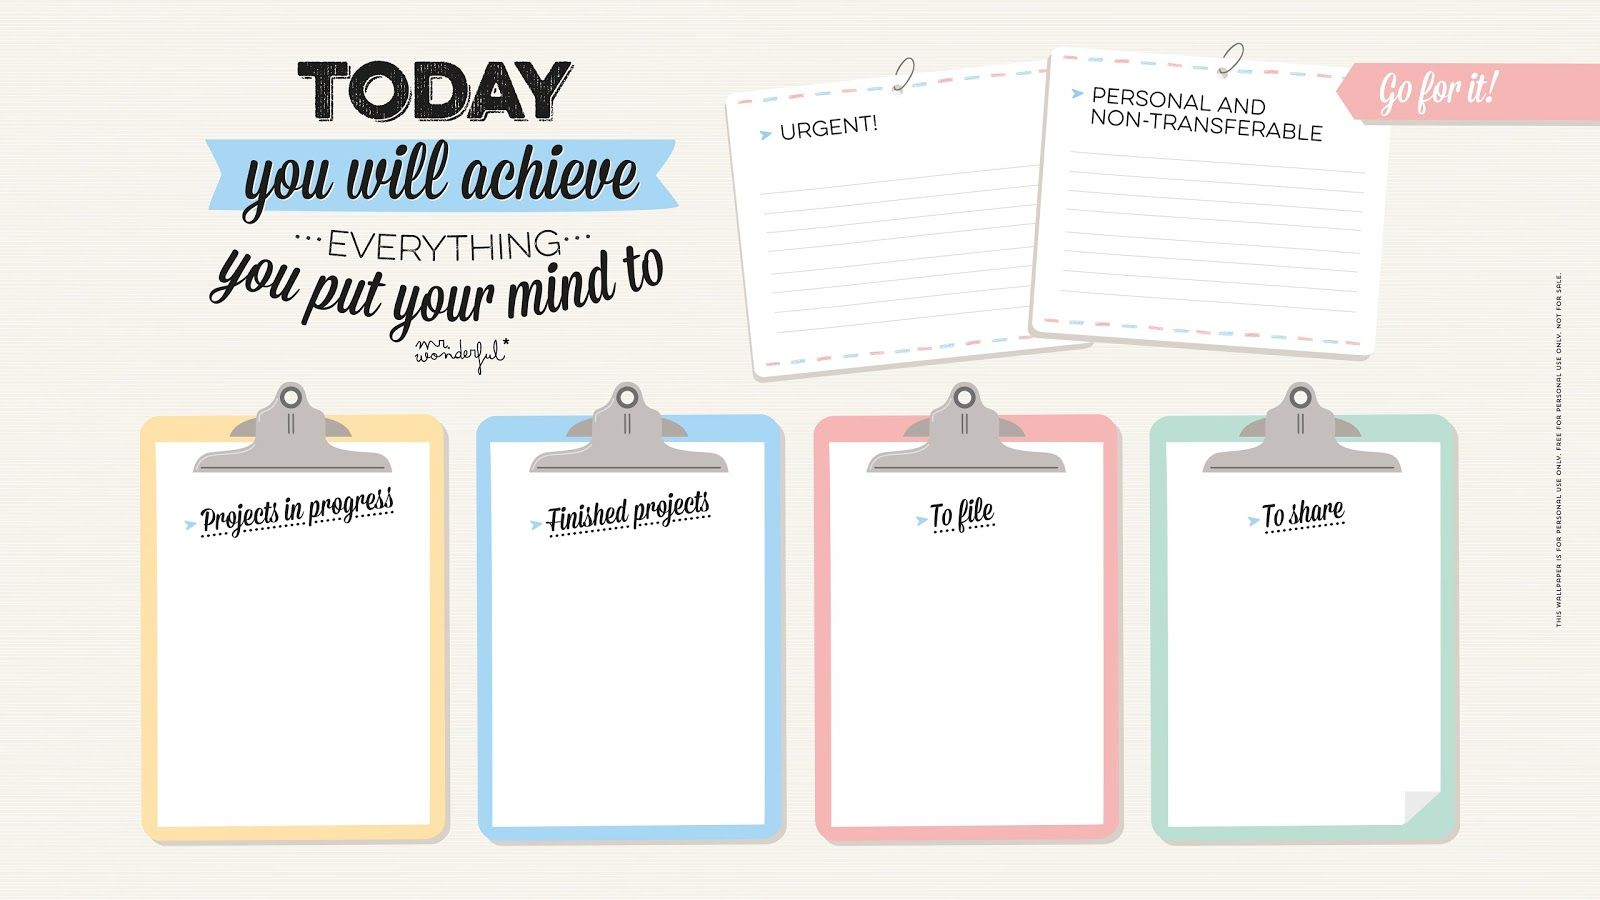 Clipboards Achieve quote desktop organizer wallpaper background - love this!   To use in 2019 ...